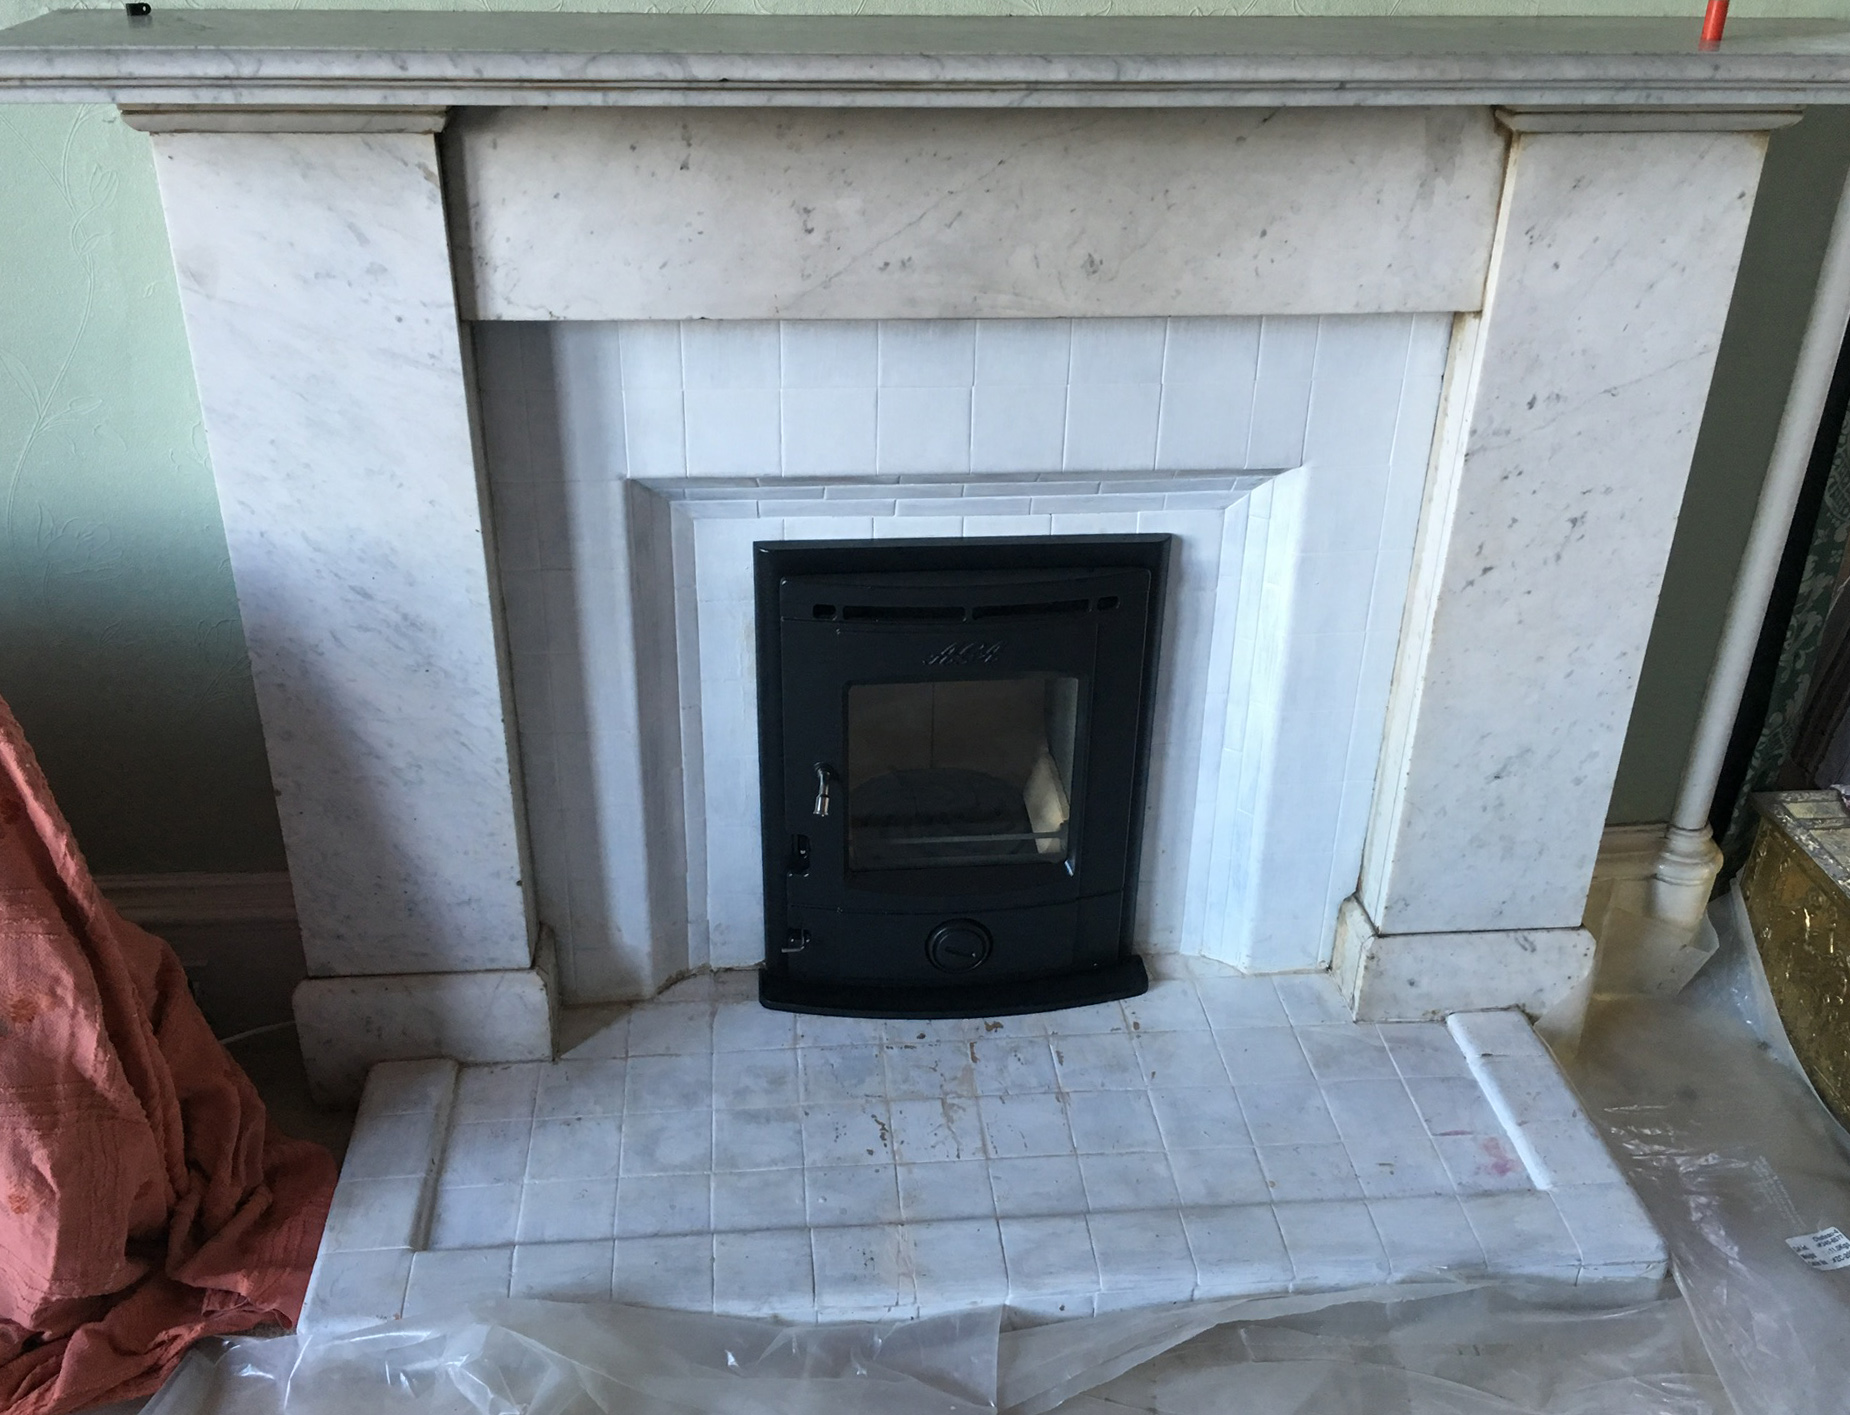 Inset stove with tiles and marble surround